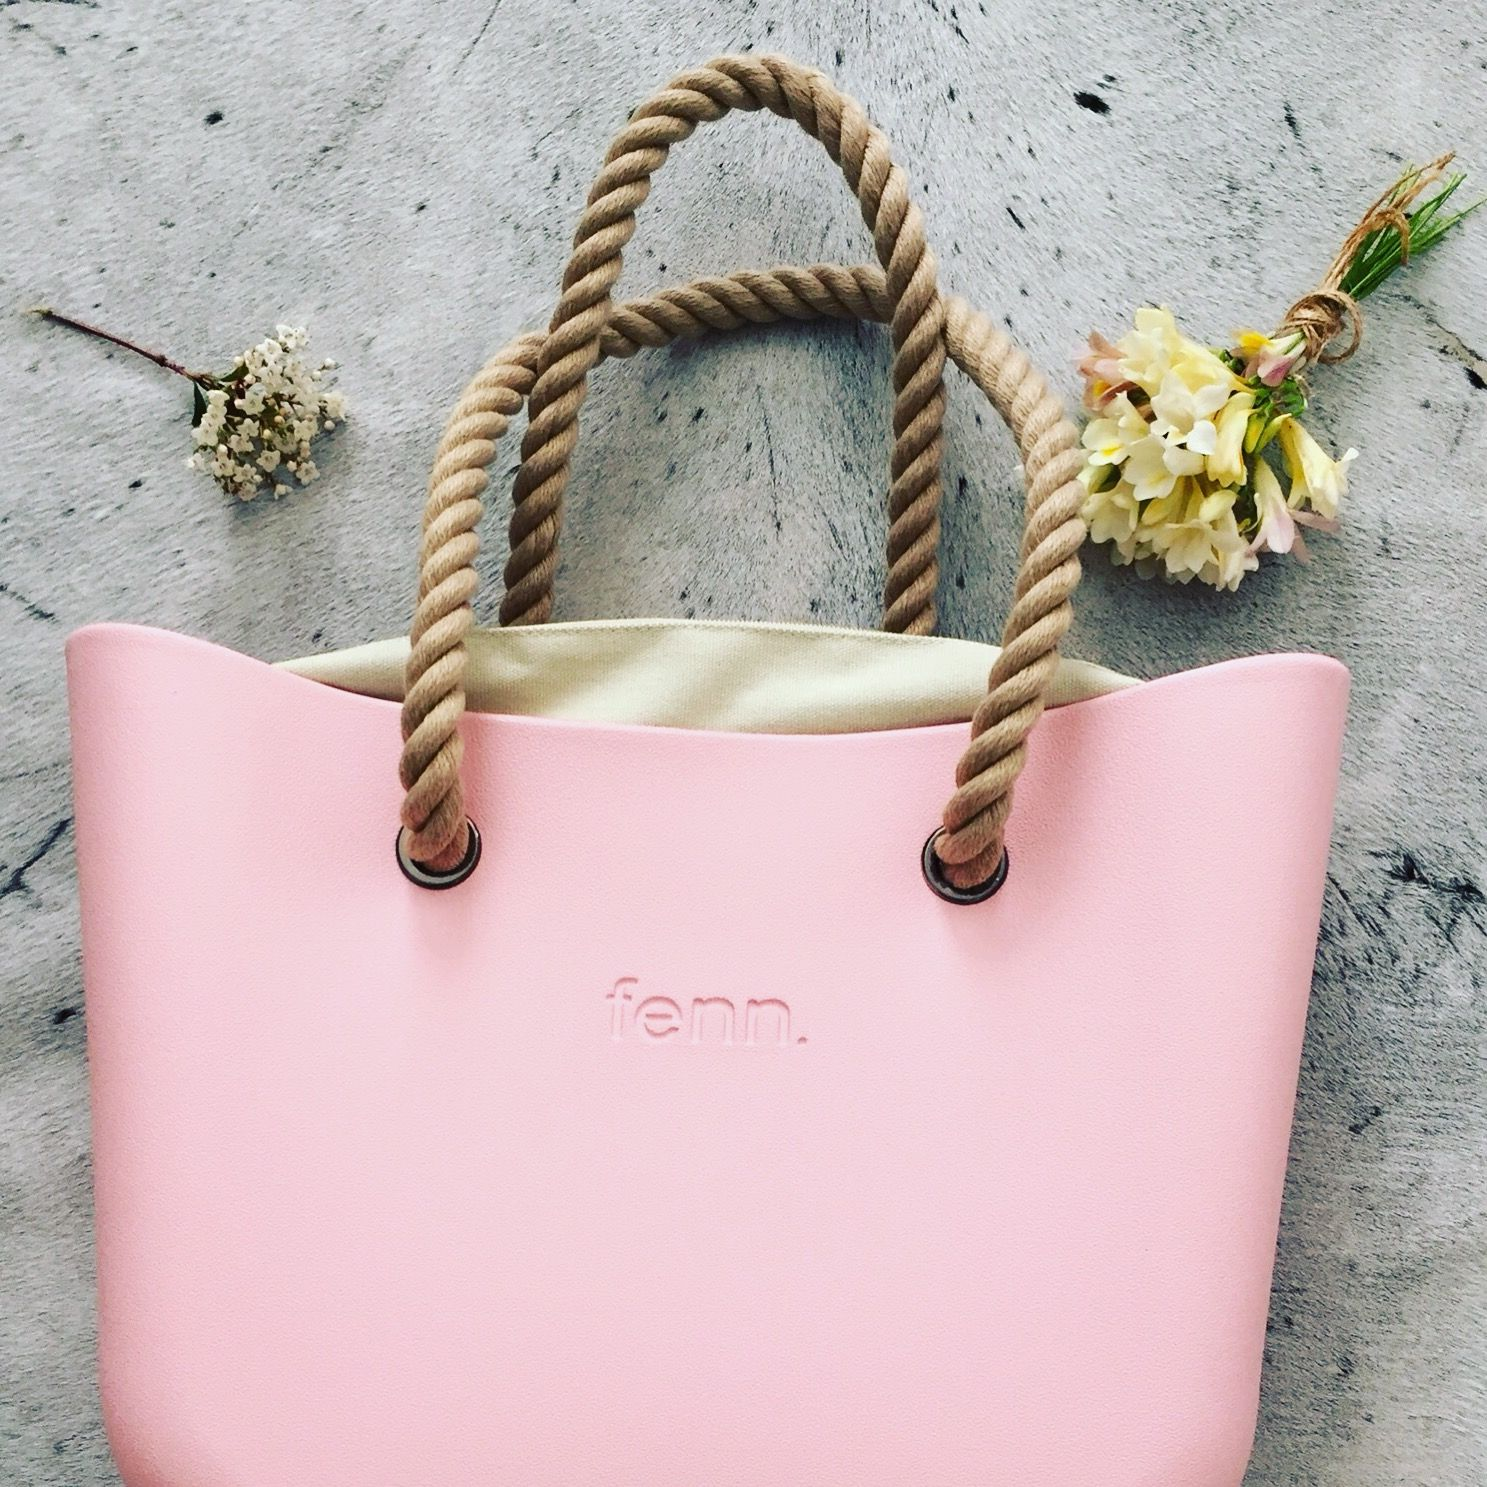 2ae02daa4803 Collection tote bag in Pink Little Trading Company, Michael Kors Jet Set,